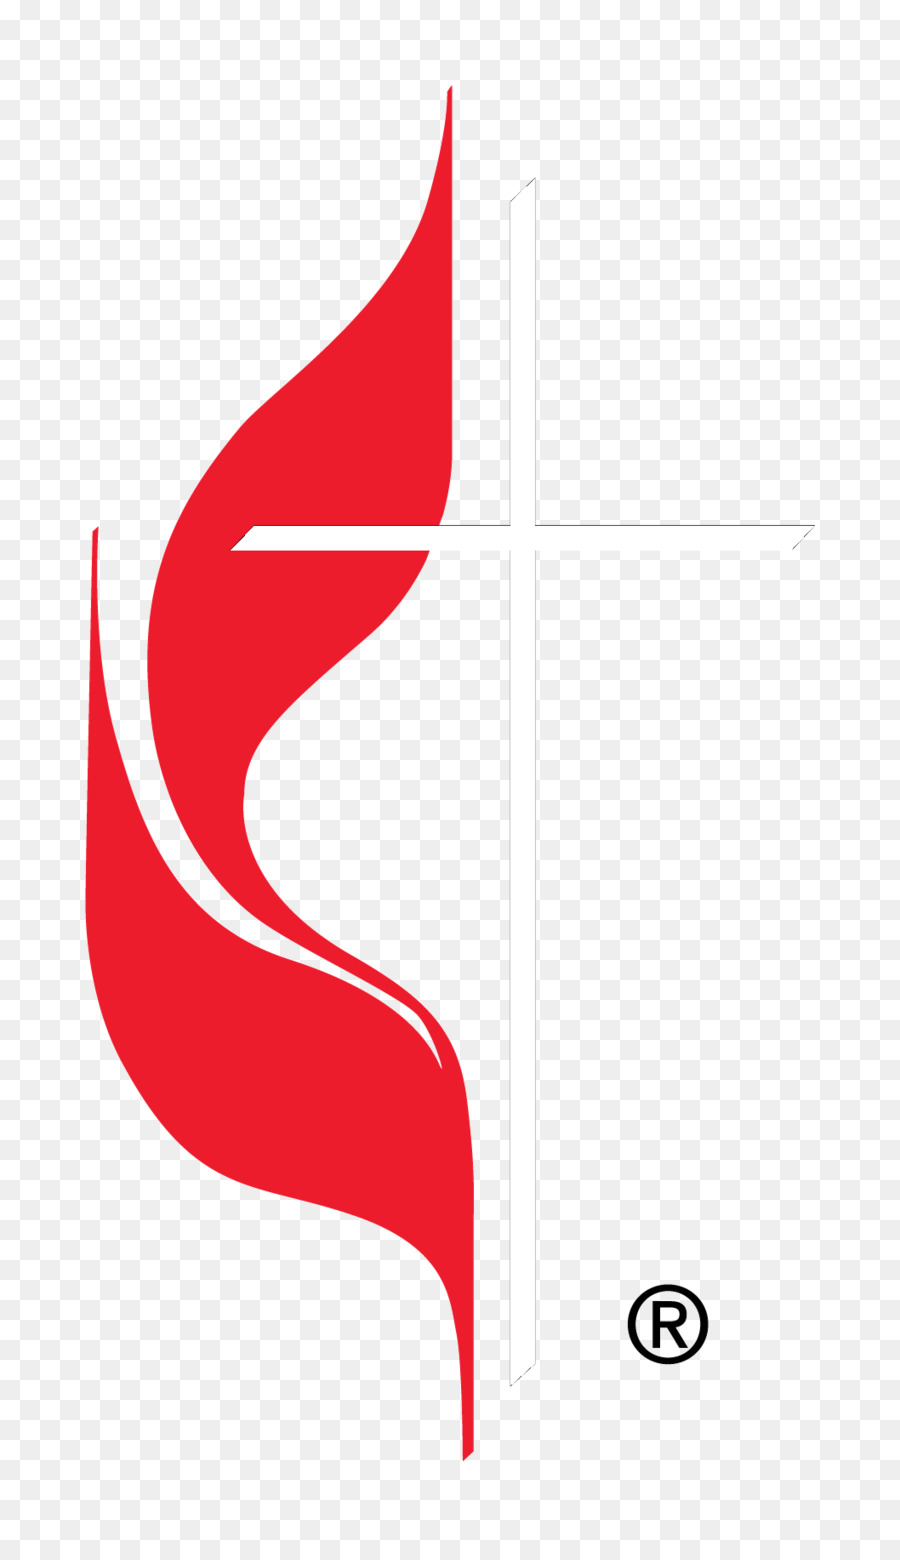 cross and flame methodism united methodist church christian cross rh kisspng com united methodist cross and flame clipart